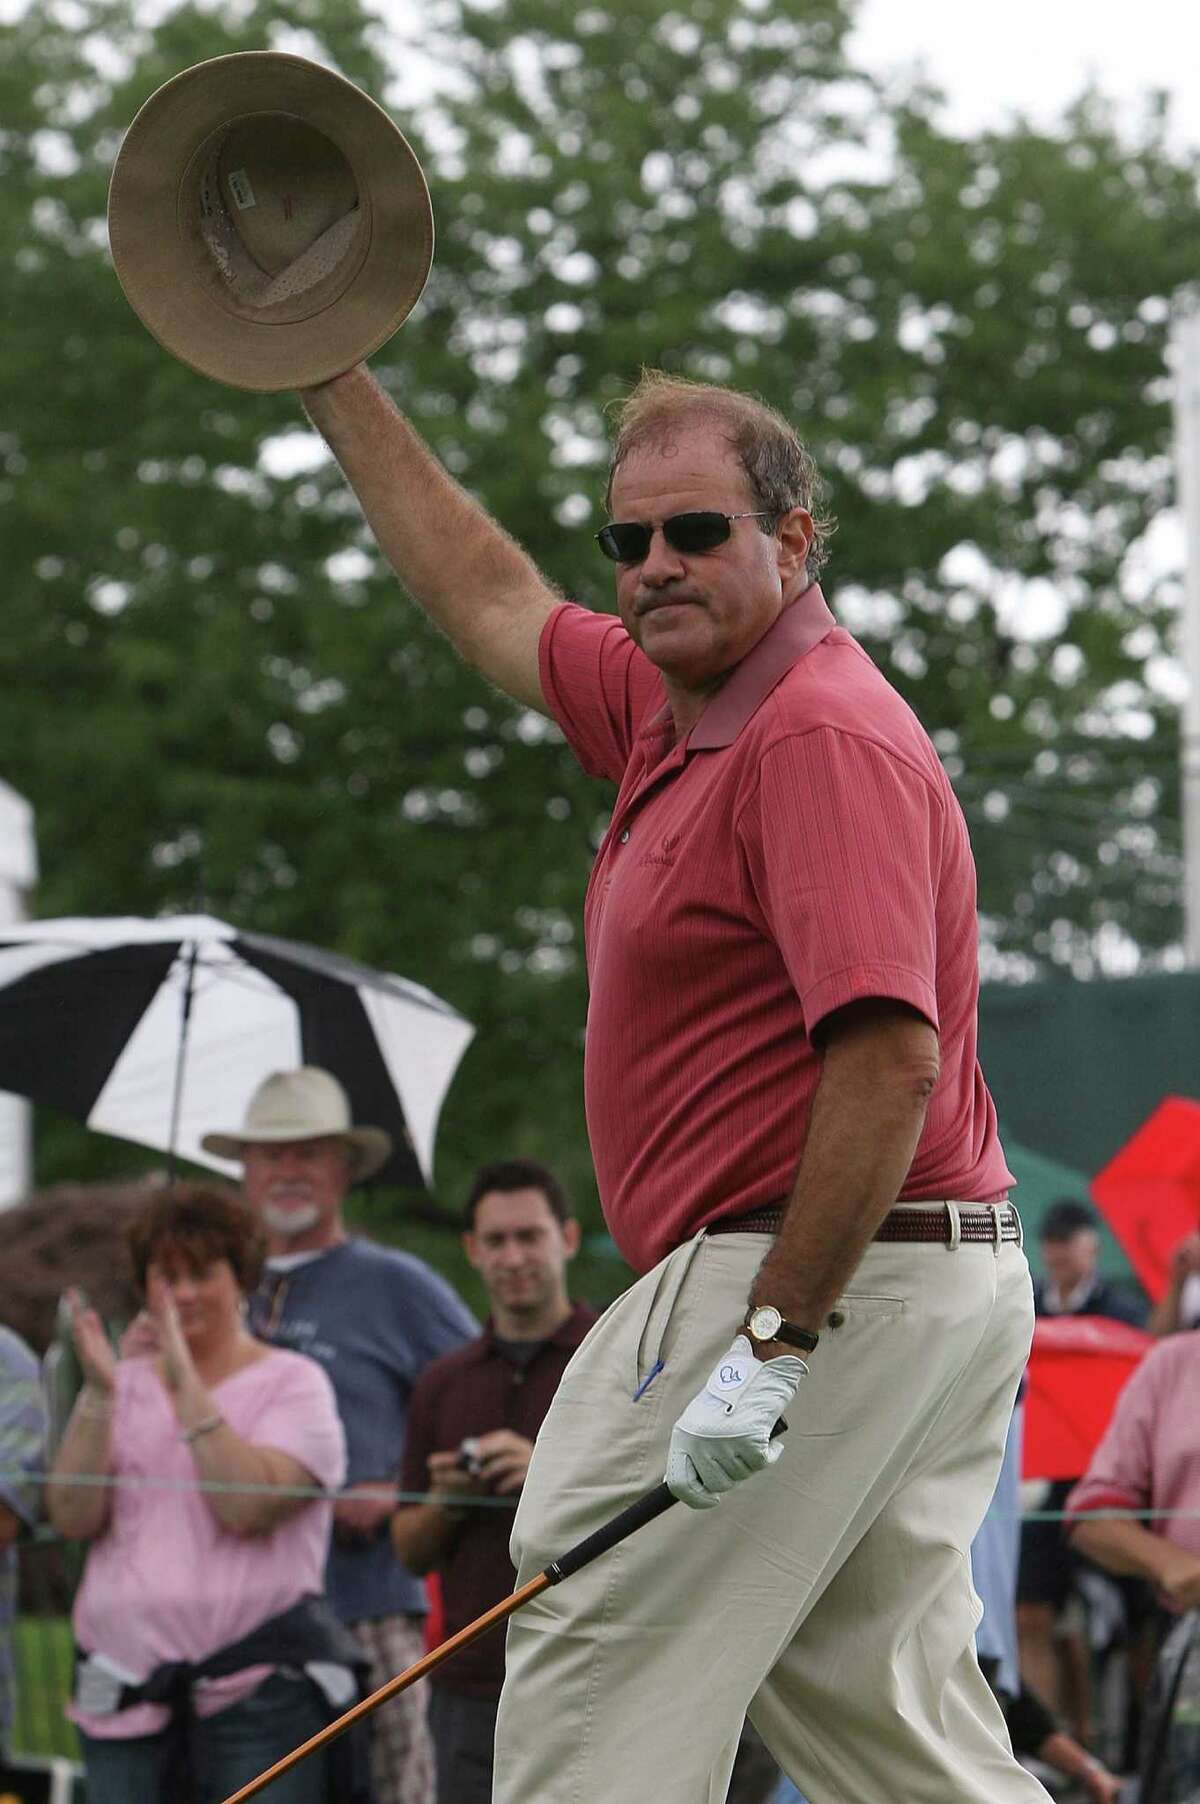 CROMWELL, CT - JUNE 24: Broadcaster Chris Berman interacts with spectators during the Travelers Championship Celebrity Pro-Am at TPC River Highlands on June 24, 2009 in Cromwell, Connecticut. (Photo by Jim Rogash/Getty Images)